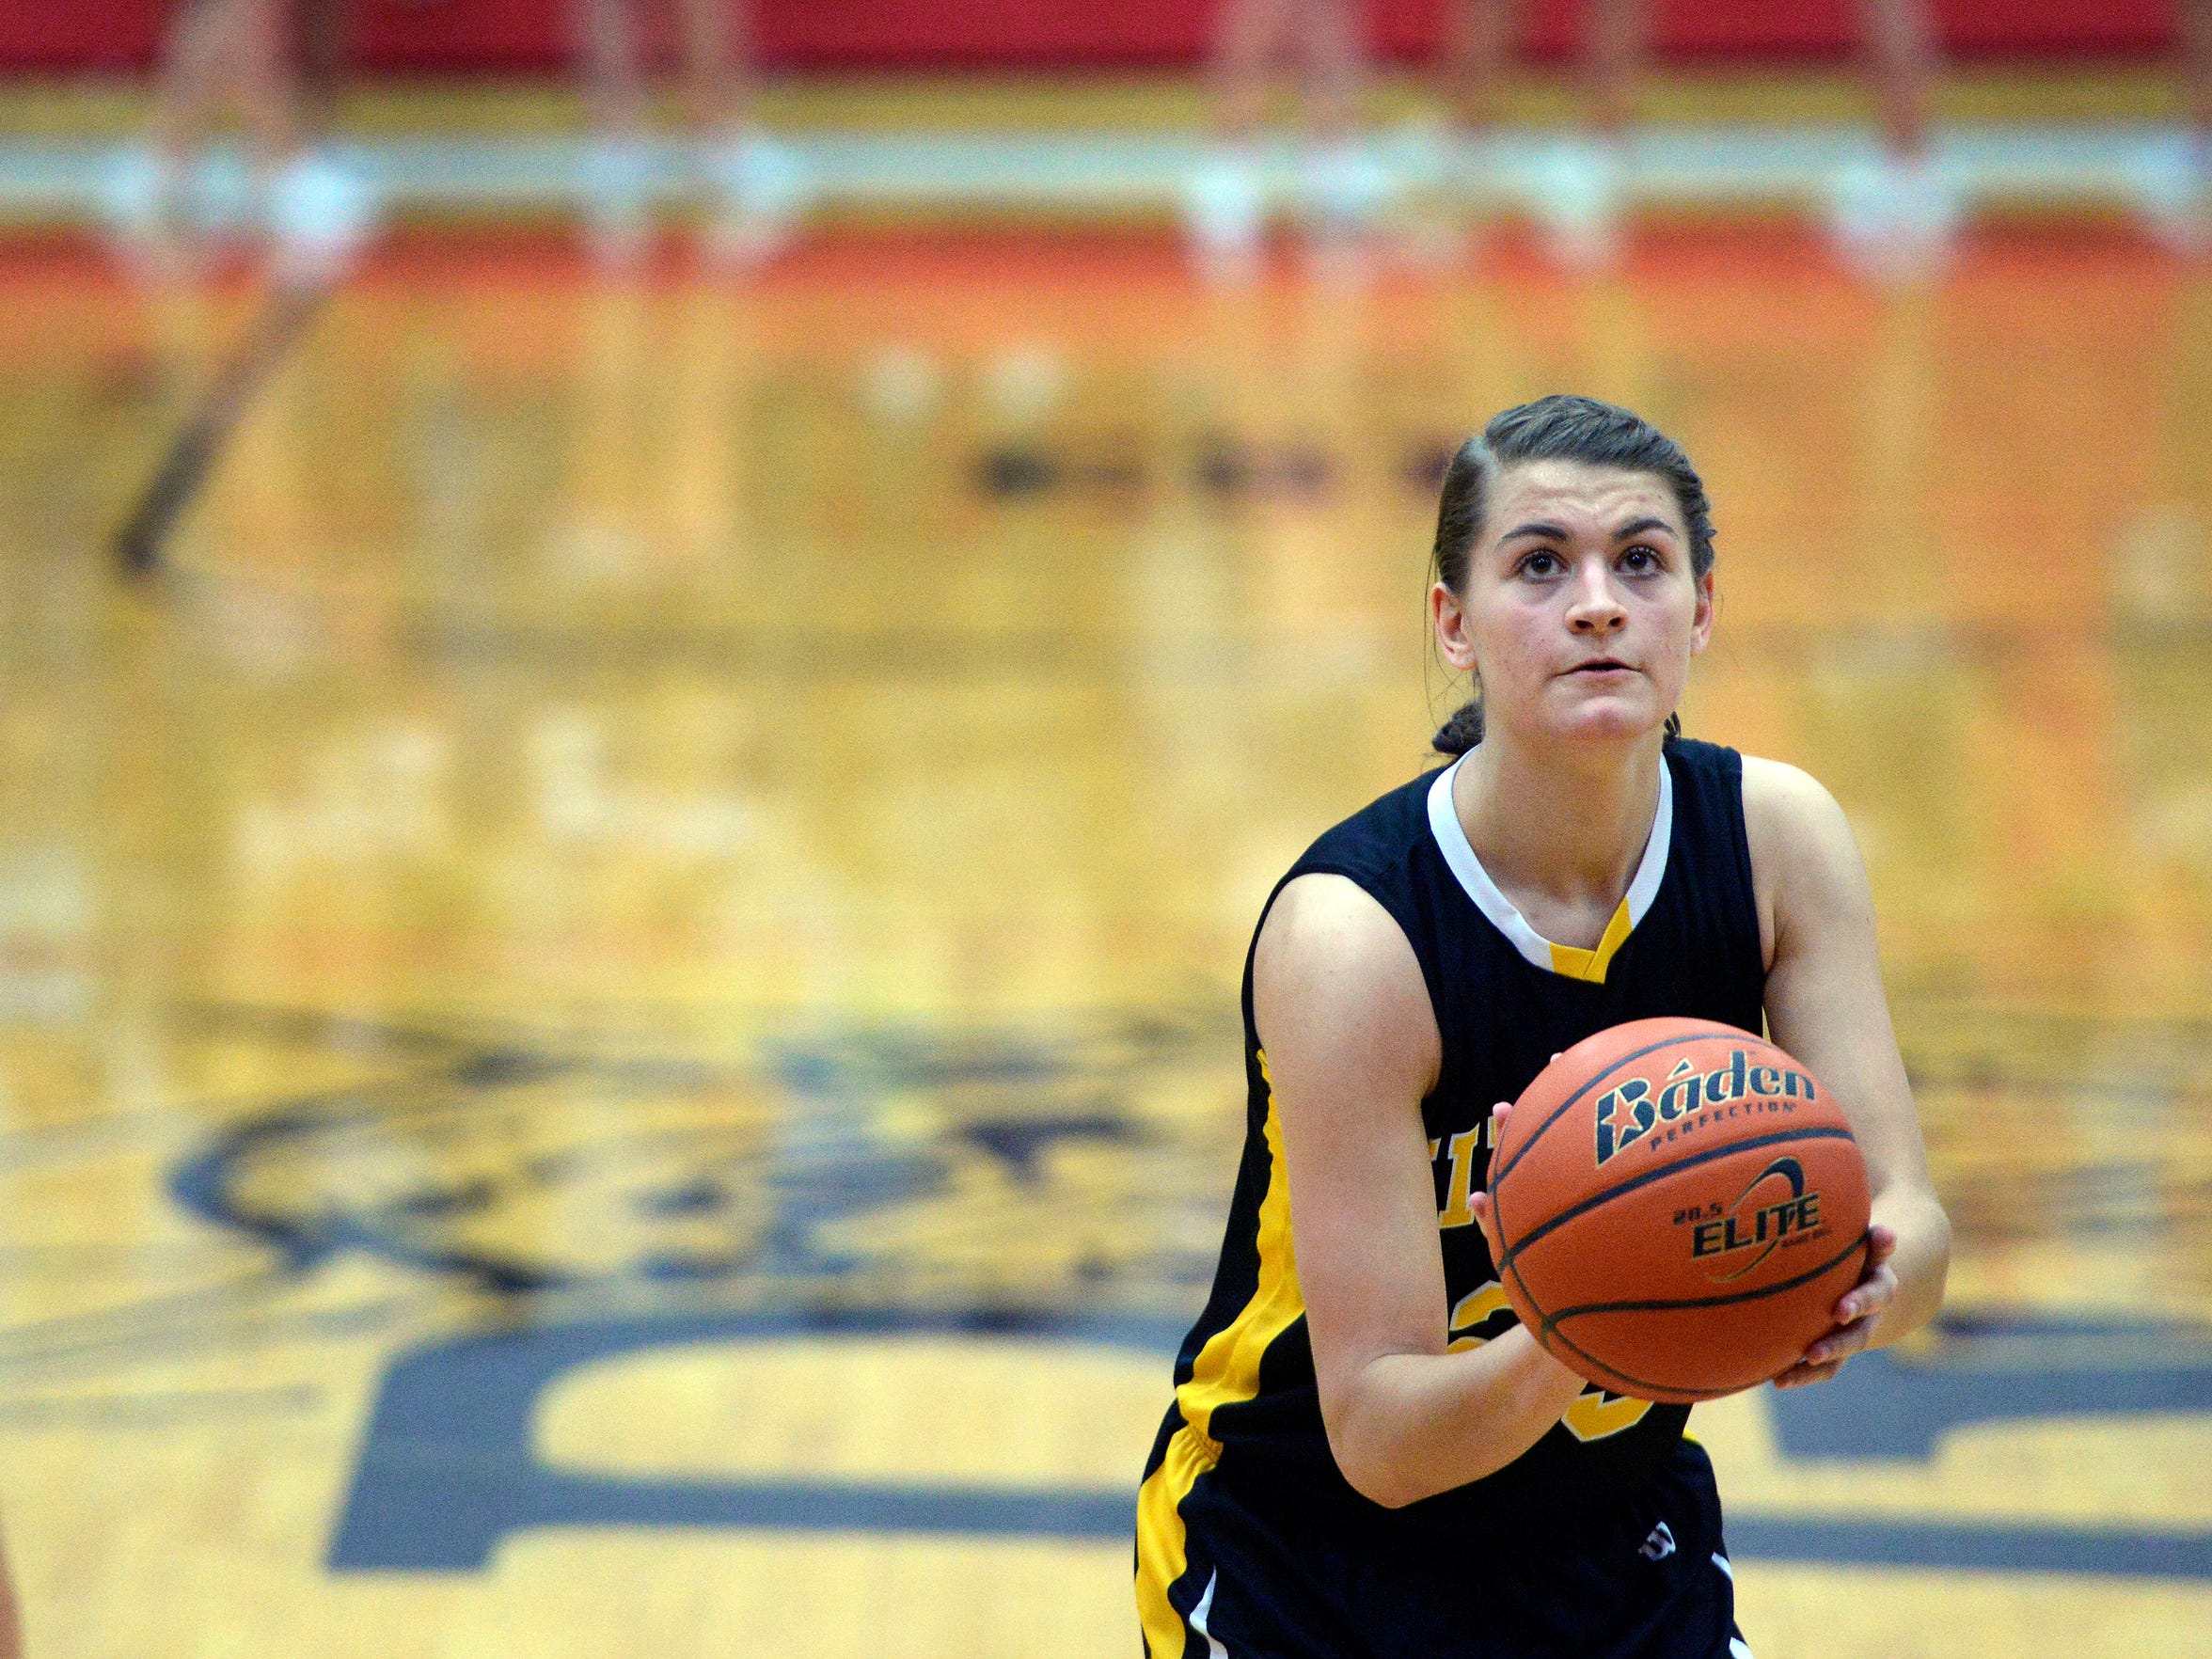 Macy Miller comes from a storied basketball family in Mitchell. Her cousin is NBA veteran Mike Miller.